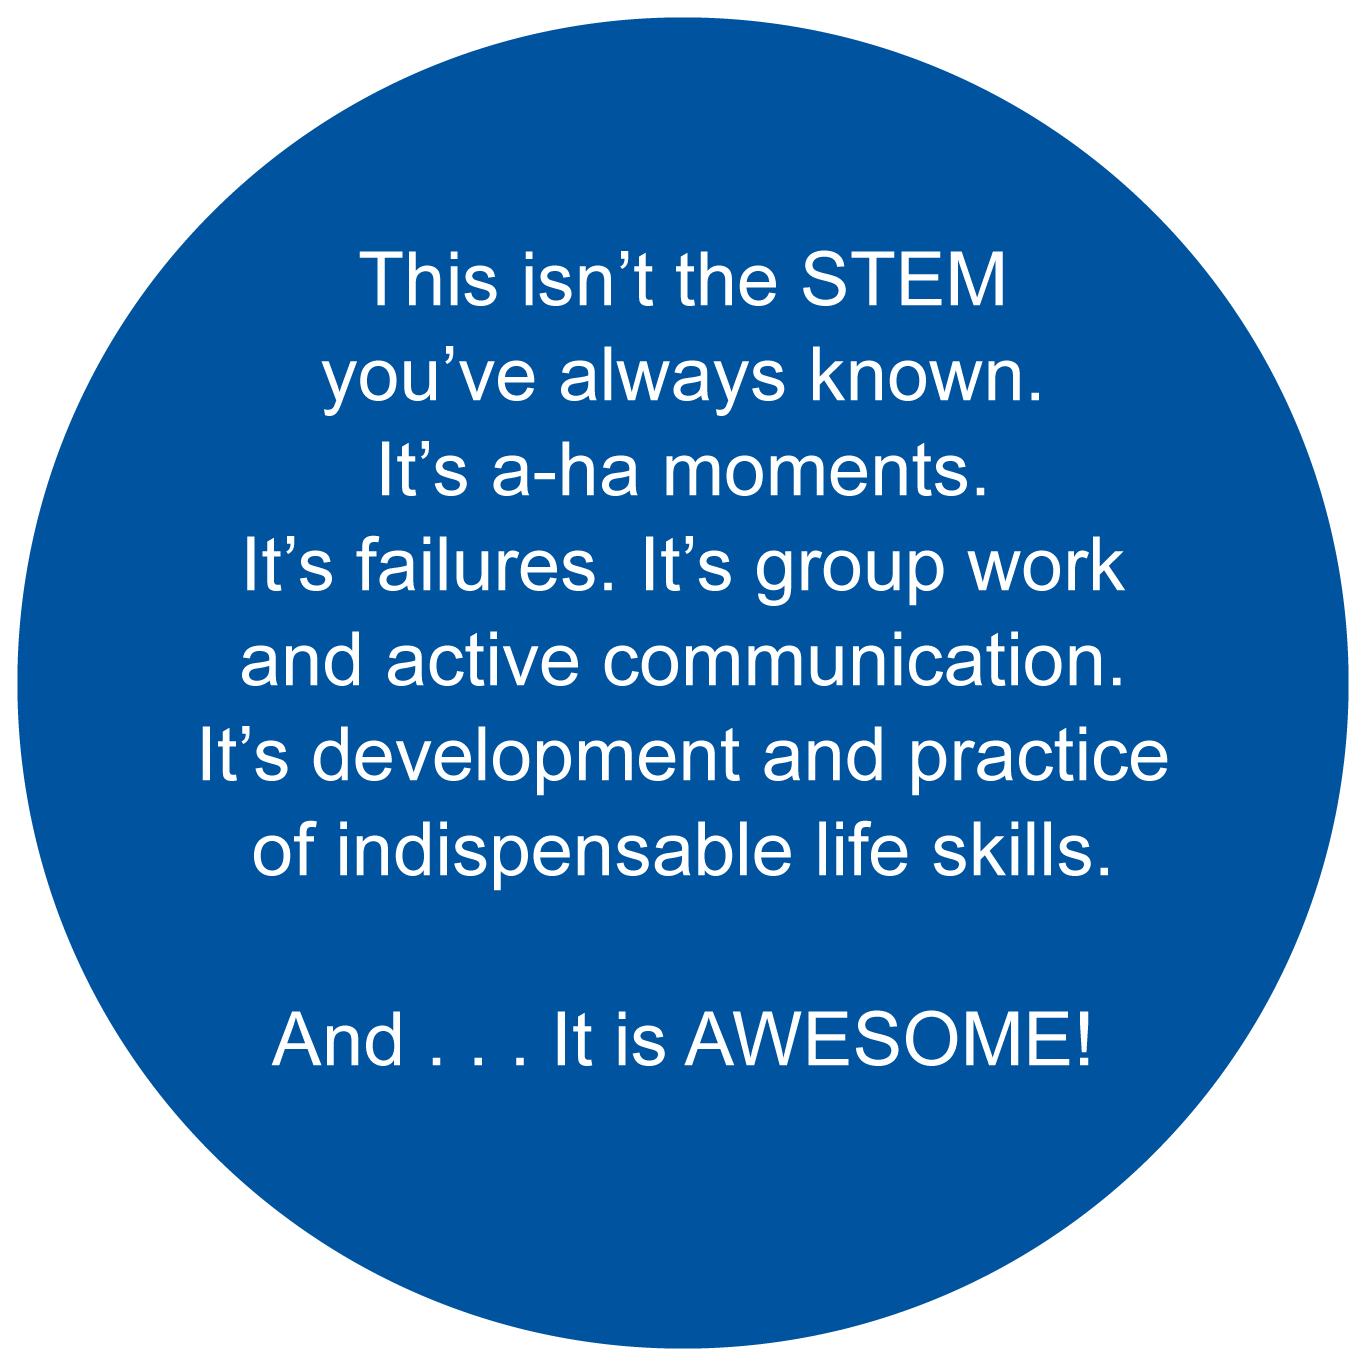 pitsco.com - Pitsco Education - This is STEM